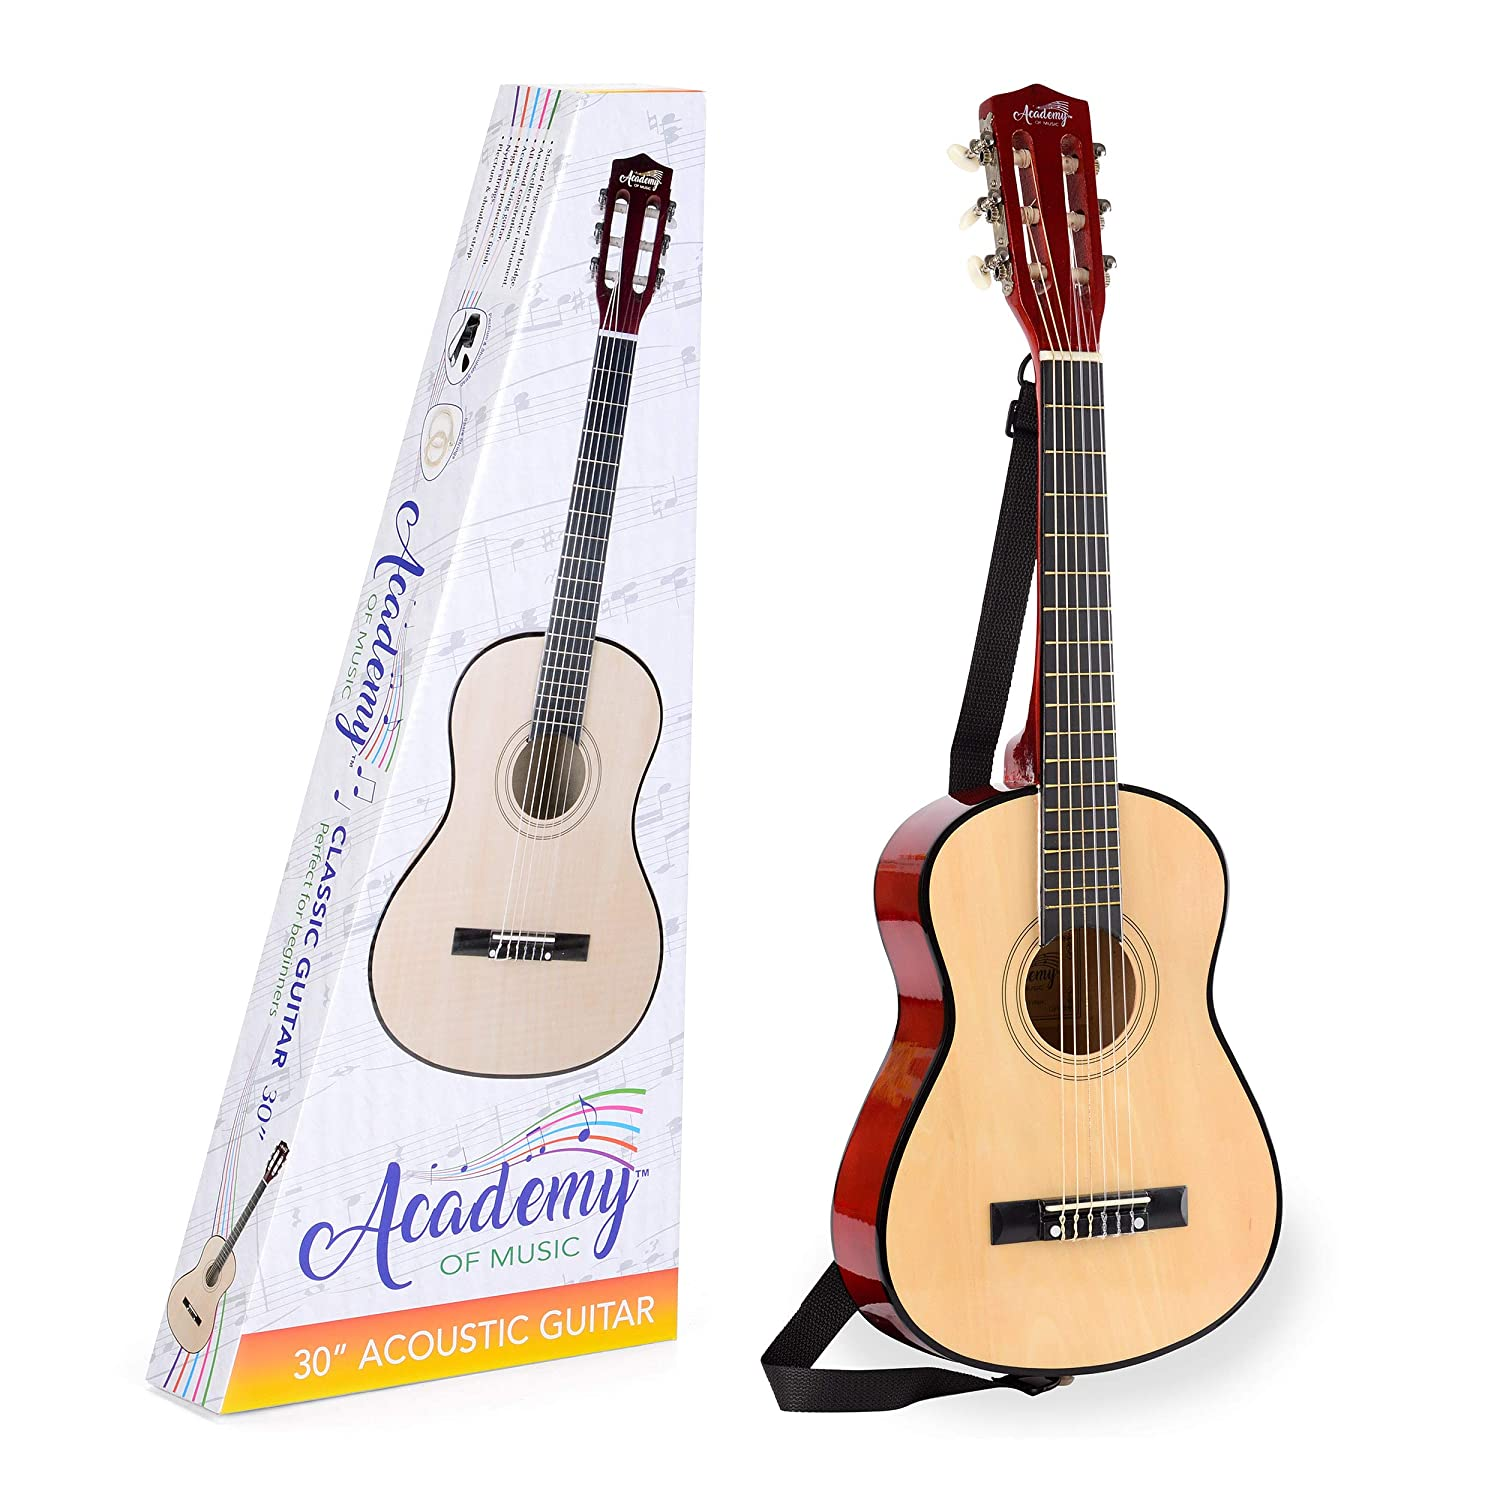 Academy of Music Acoustic Guitar for Kids - 30 Inch Toyrific TY5904